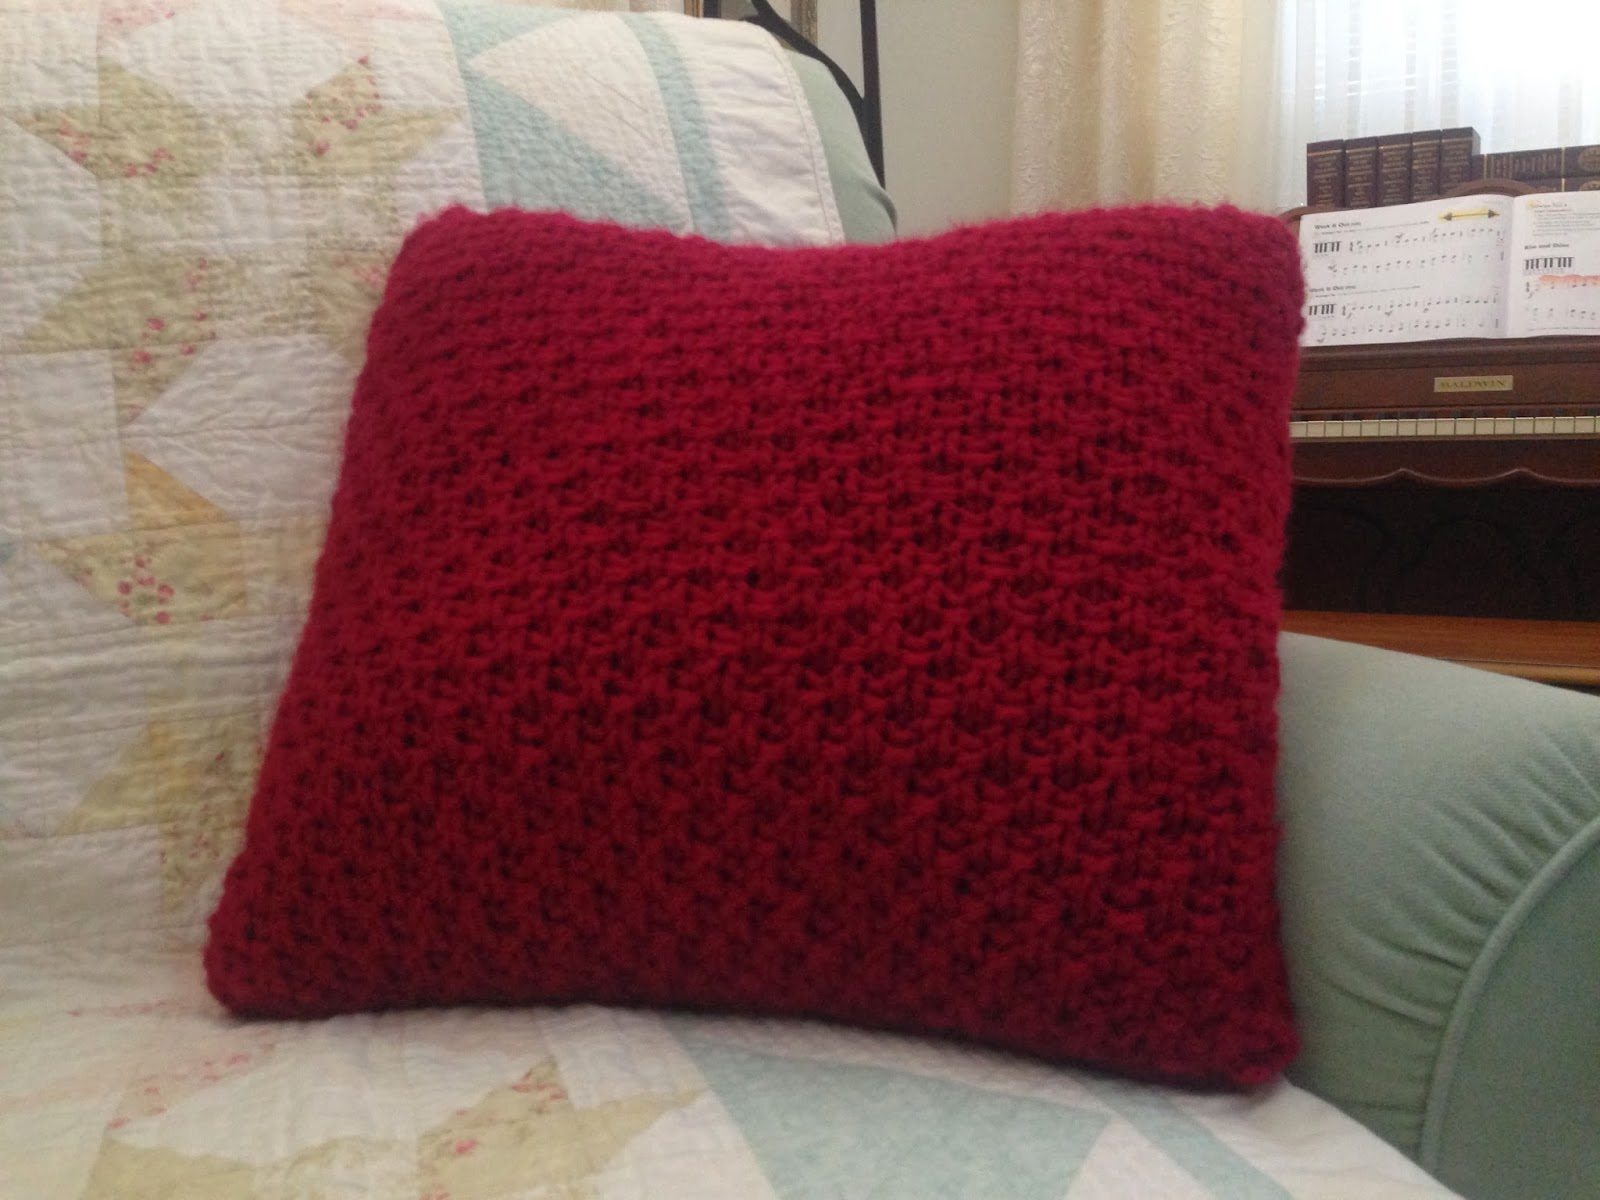 Chunky Knit Pillow Pattern : Chucklemops: Chunky Knit Pillow Cover